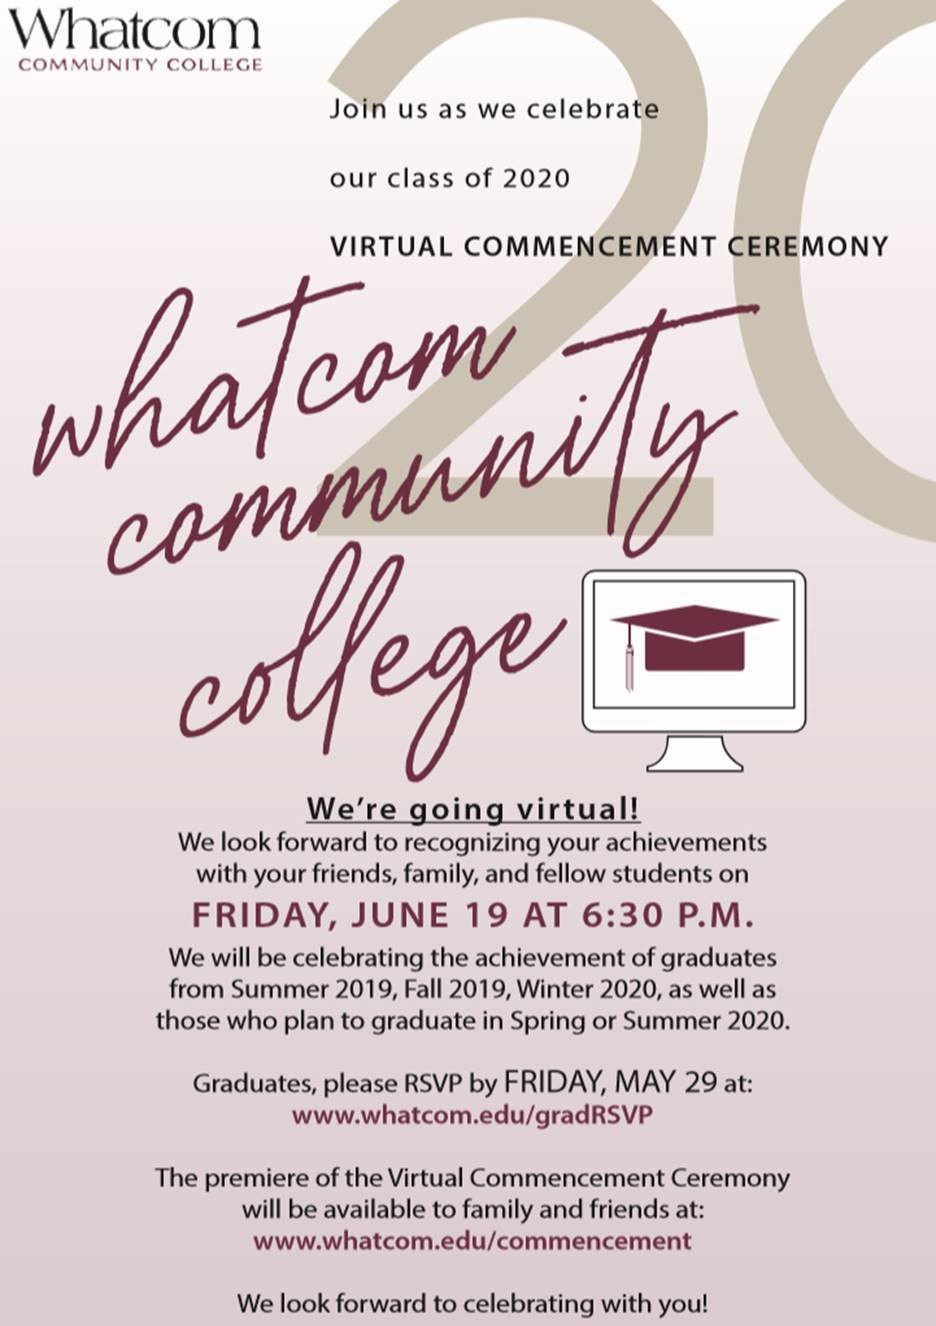 RSVP for Virtual Commencement